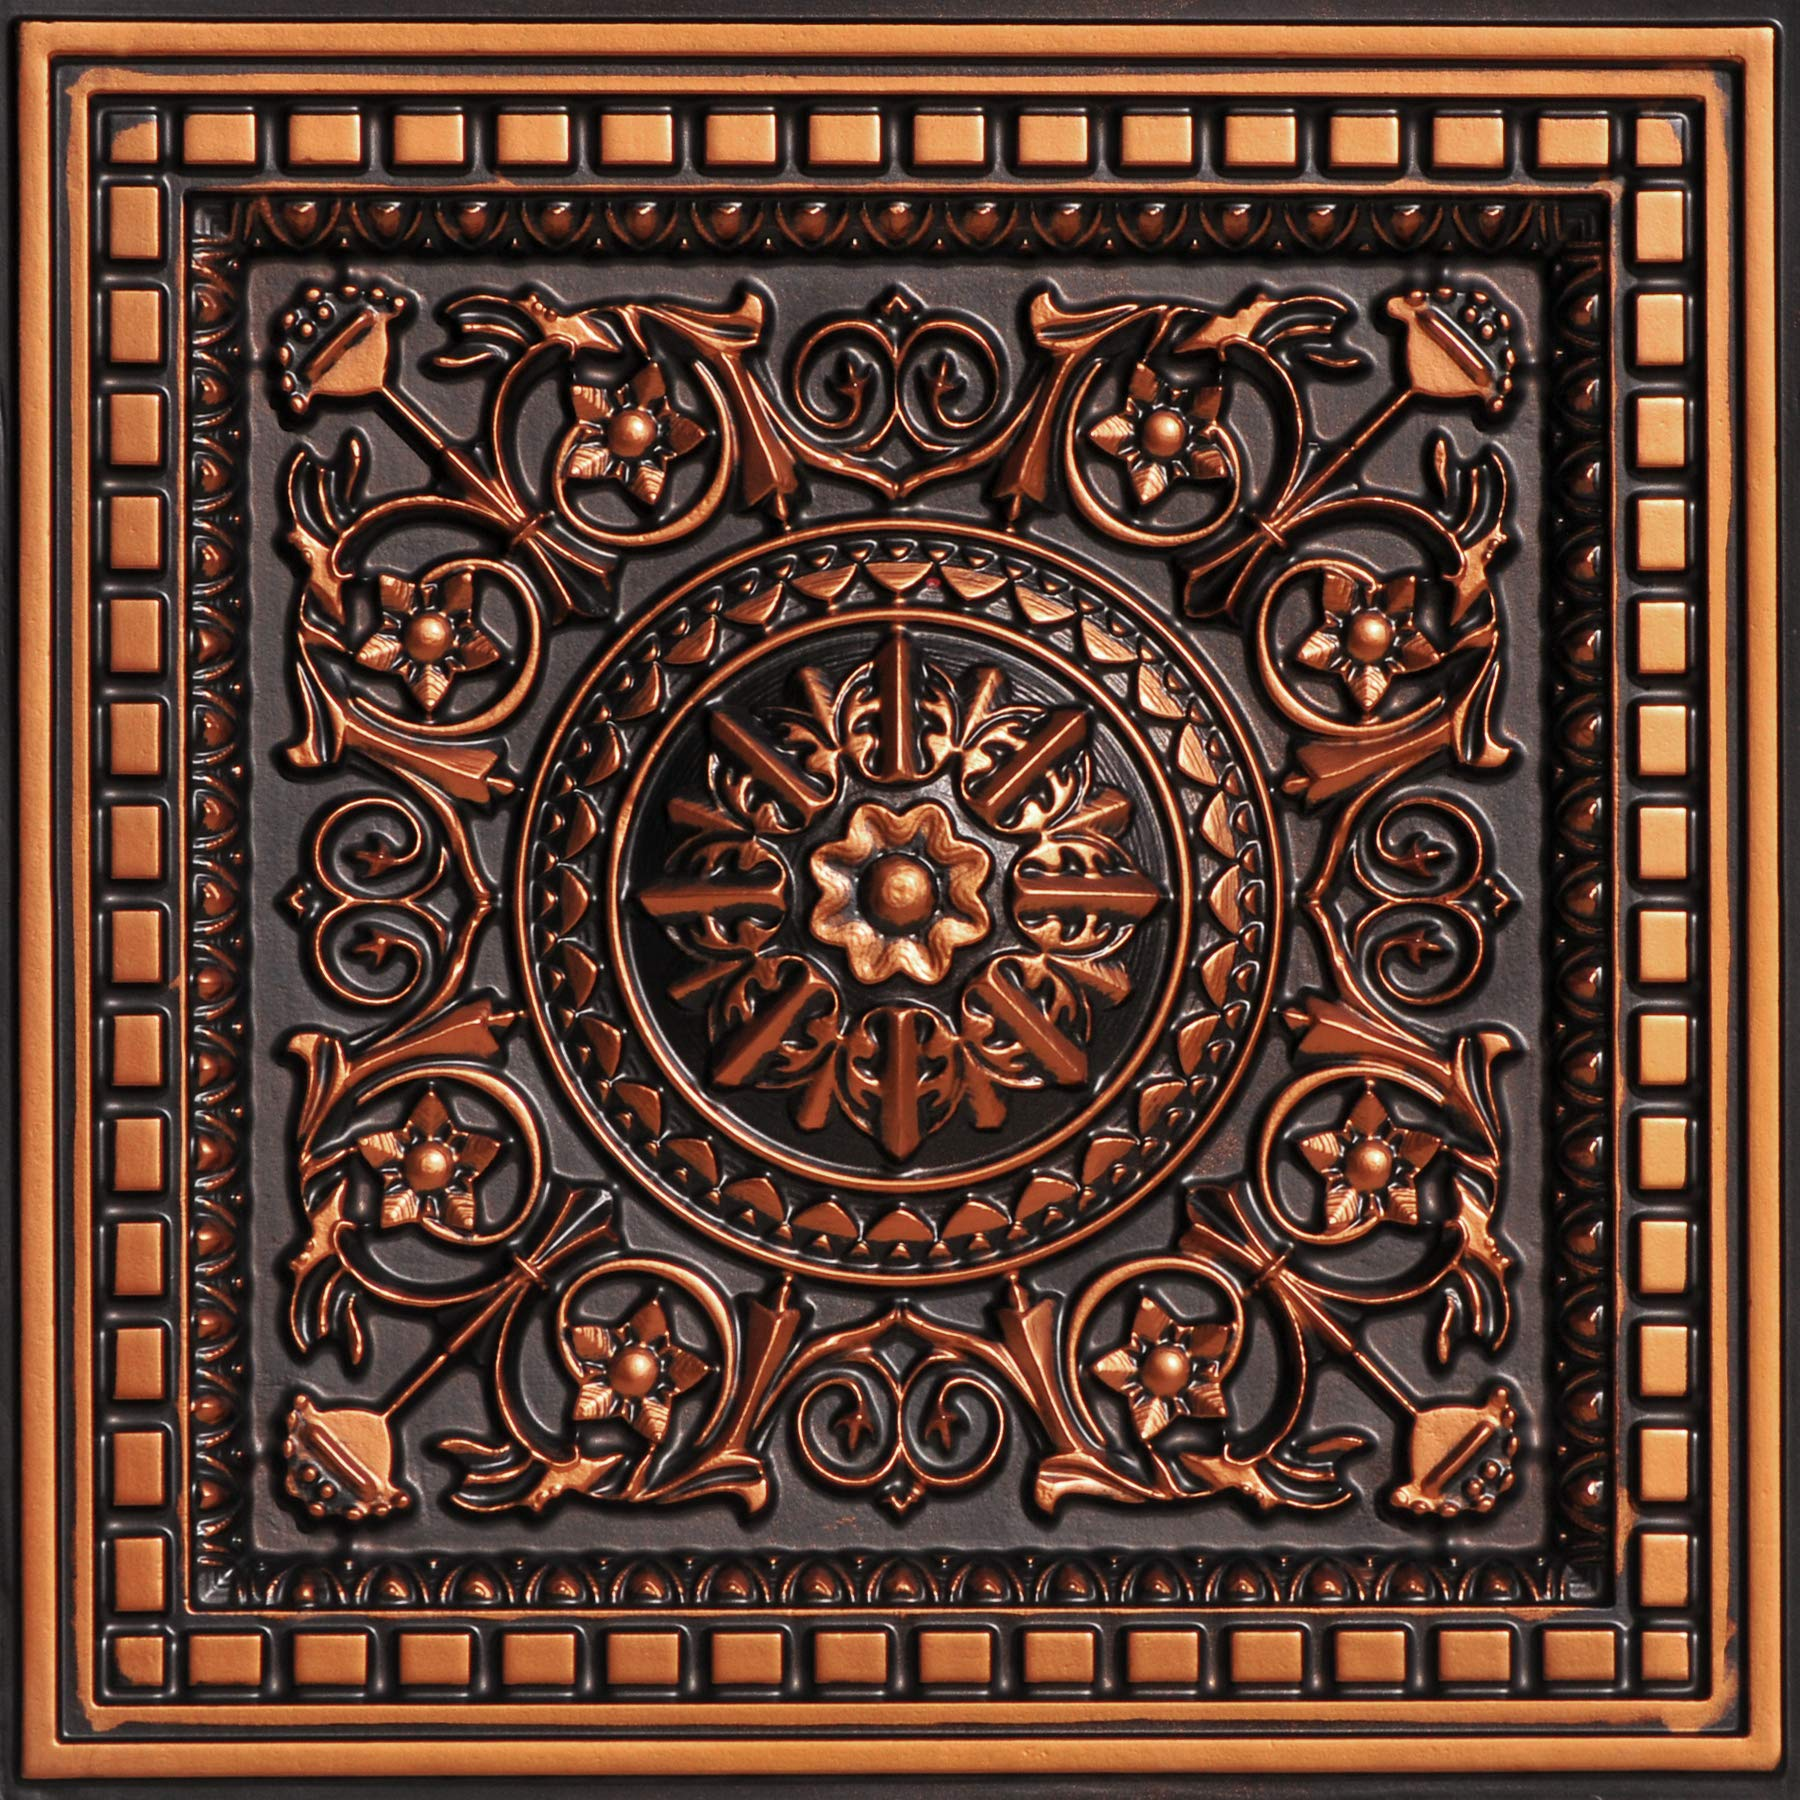 From Plain To Beautiful In Hours 215ac-24x24 Ceiling Tile Antique Copper